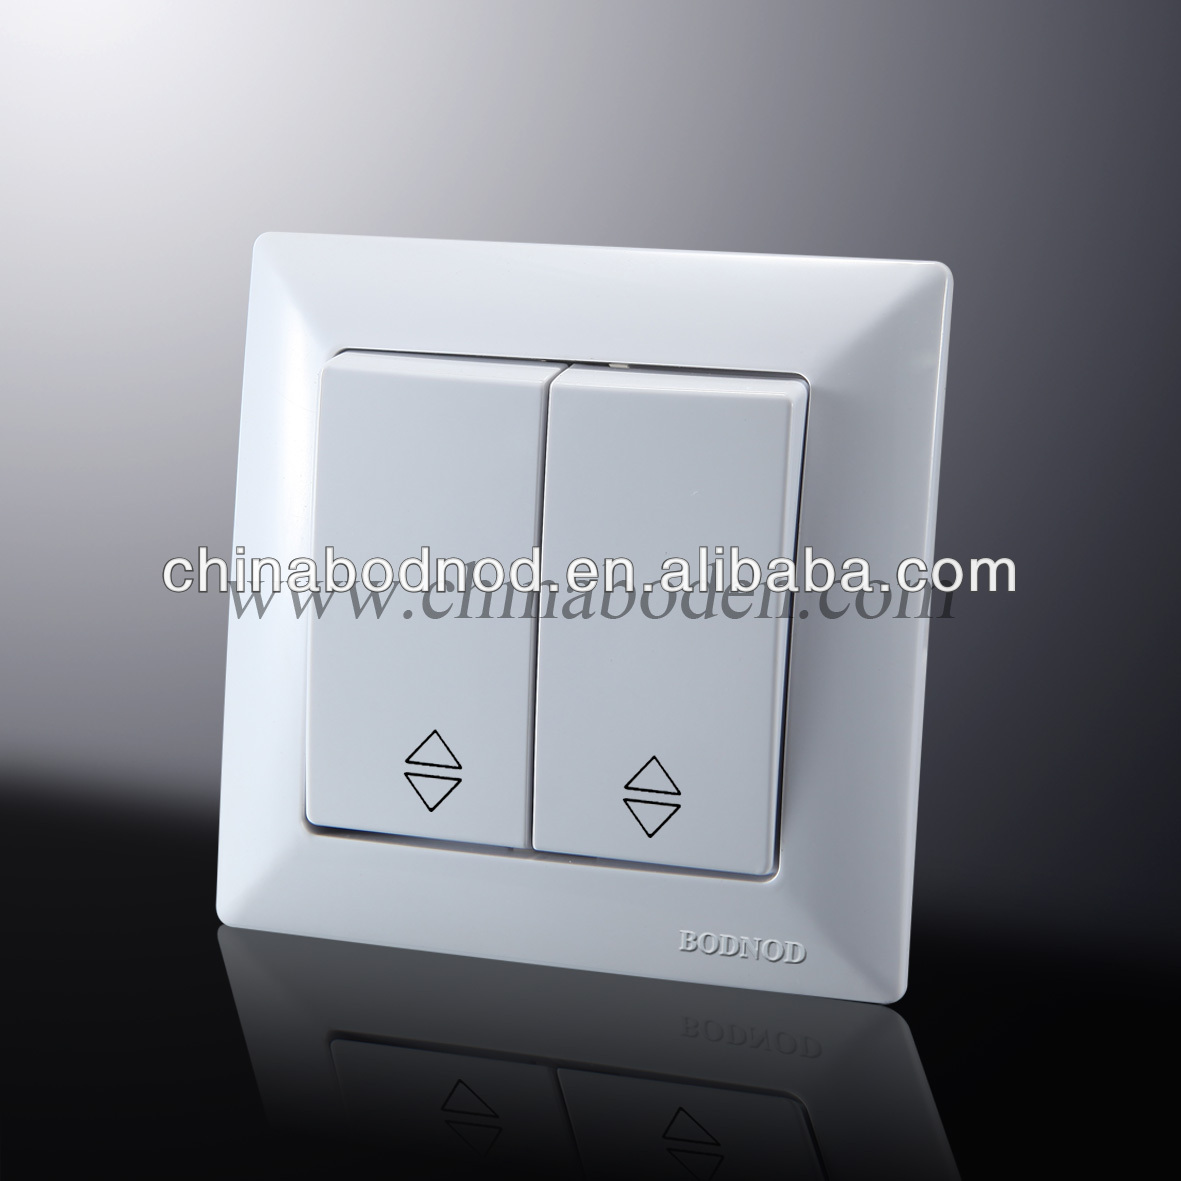 Wall Light Switches And Sockets, Wall Light Switches And Sockets ...